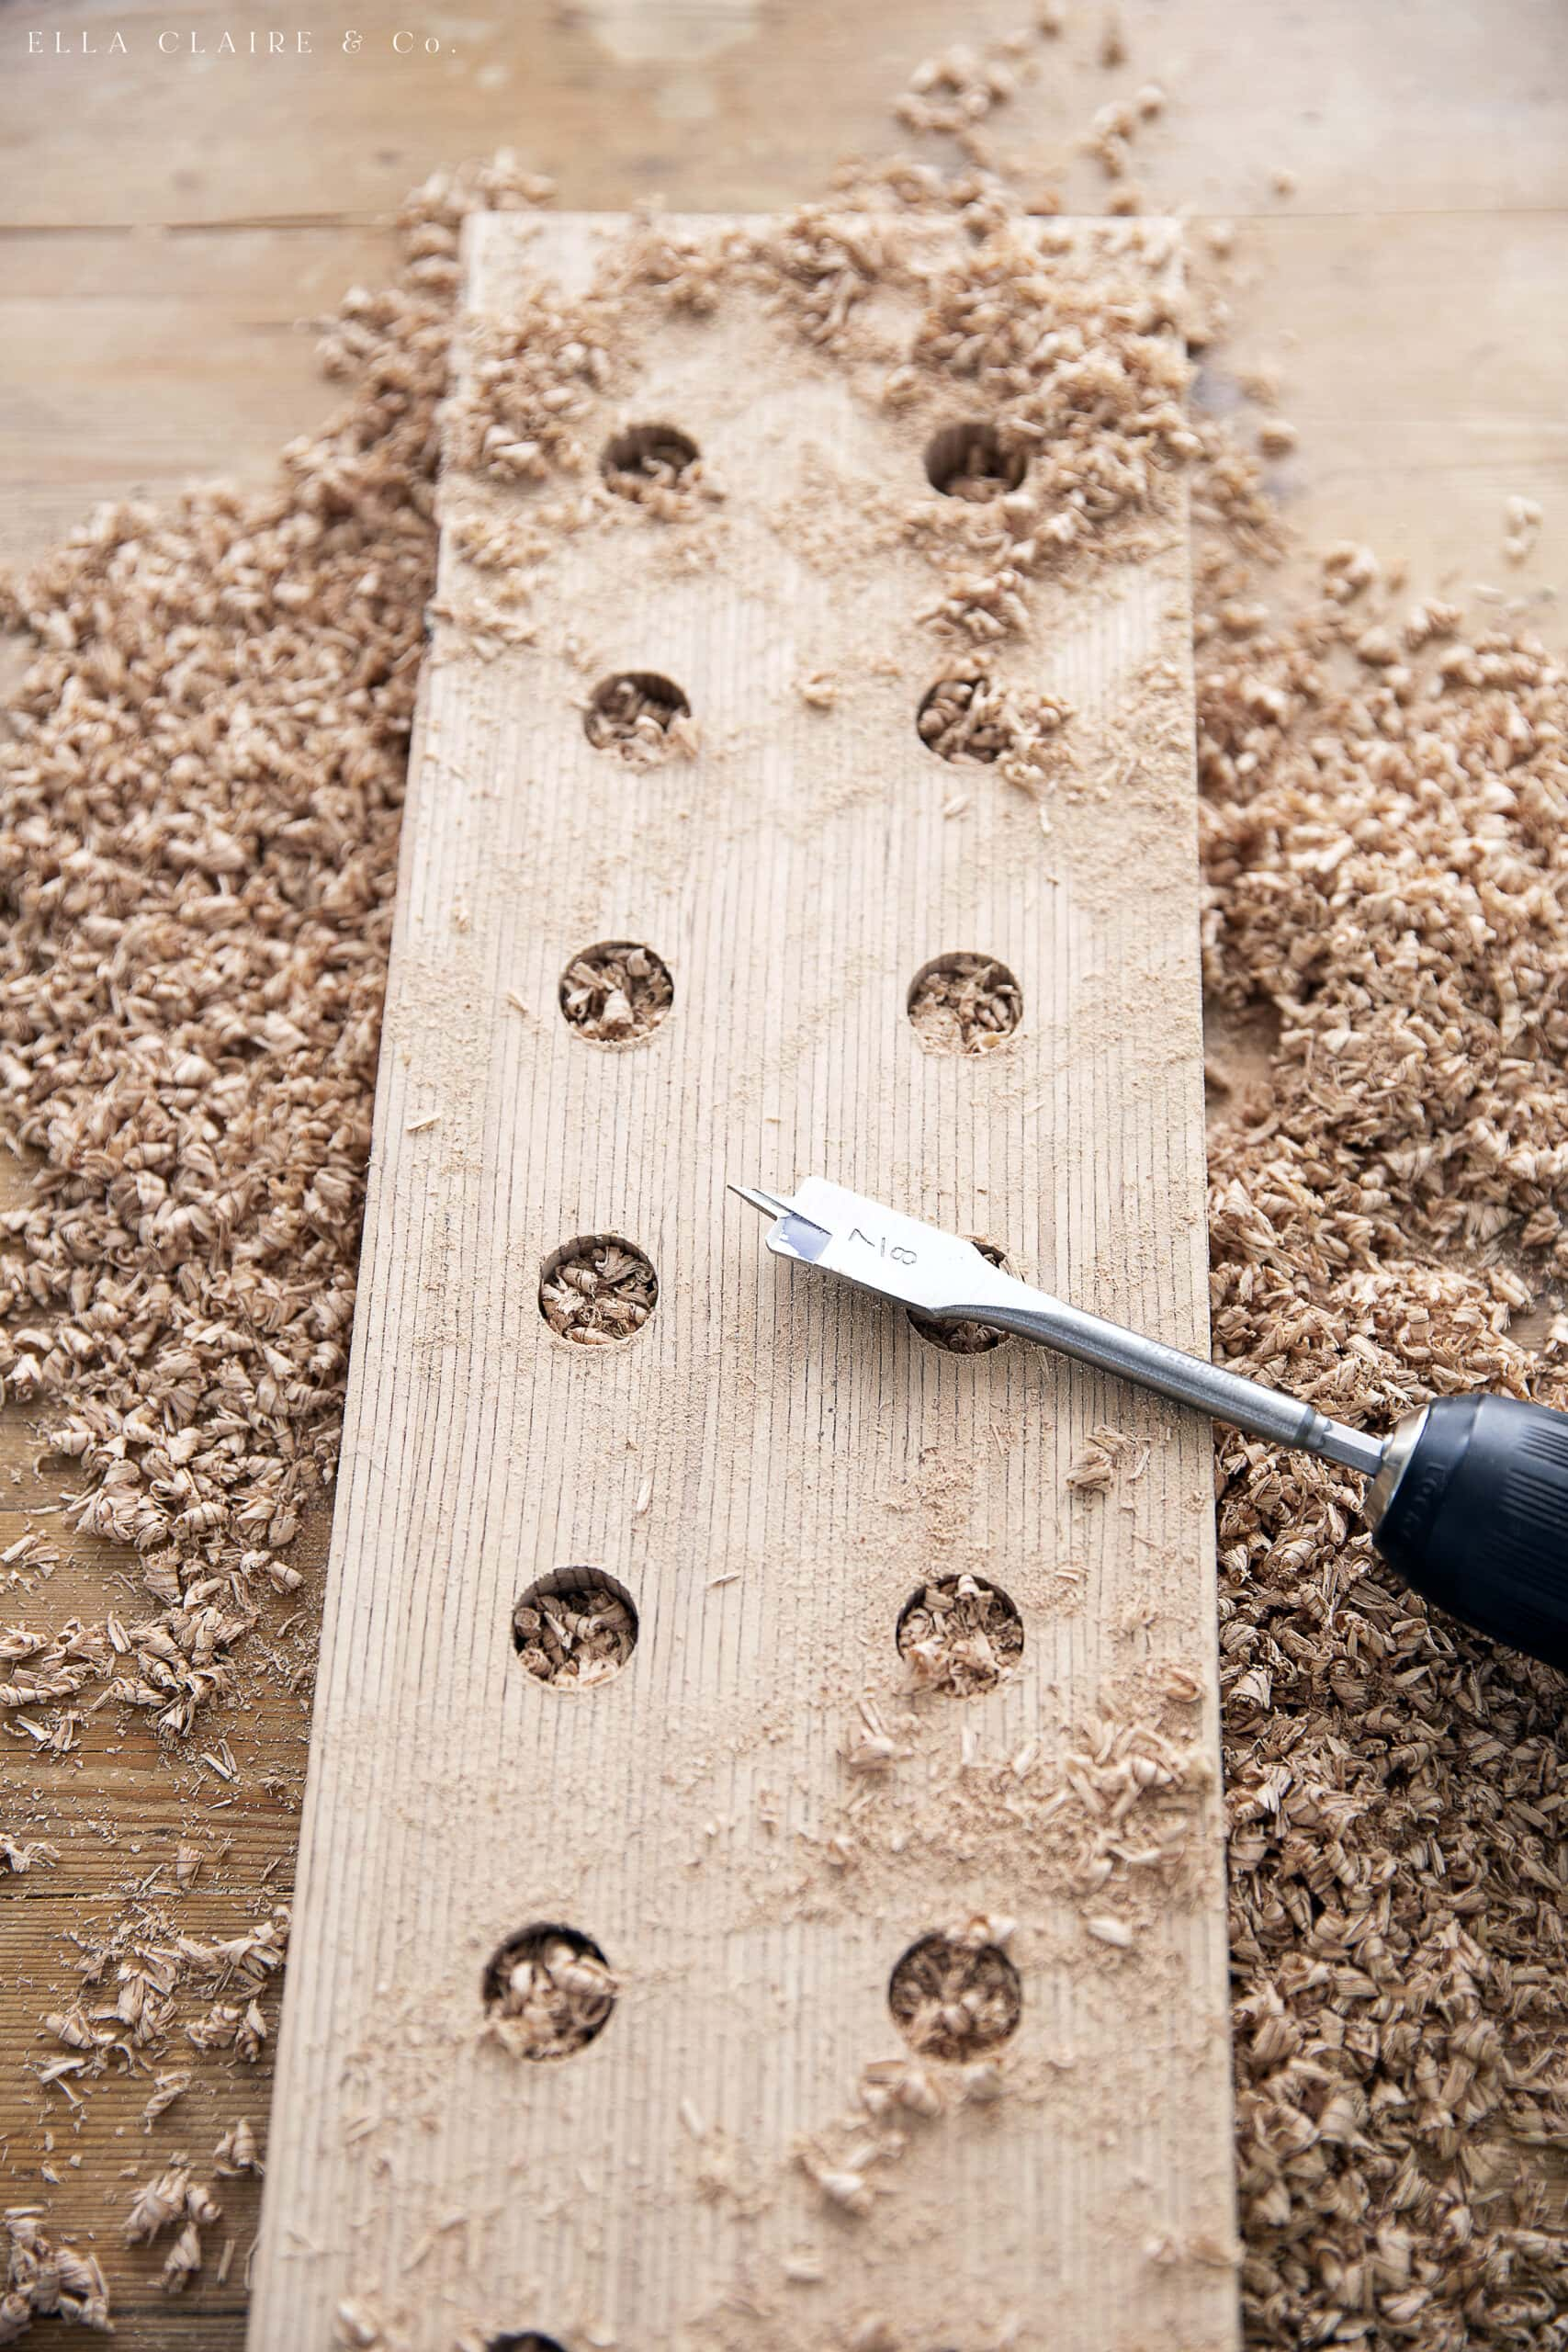 finish drilling all holes in wooden candle holders with paddle bit